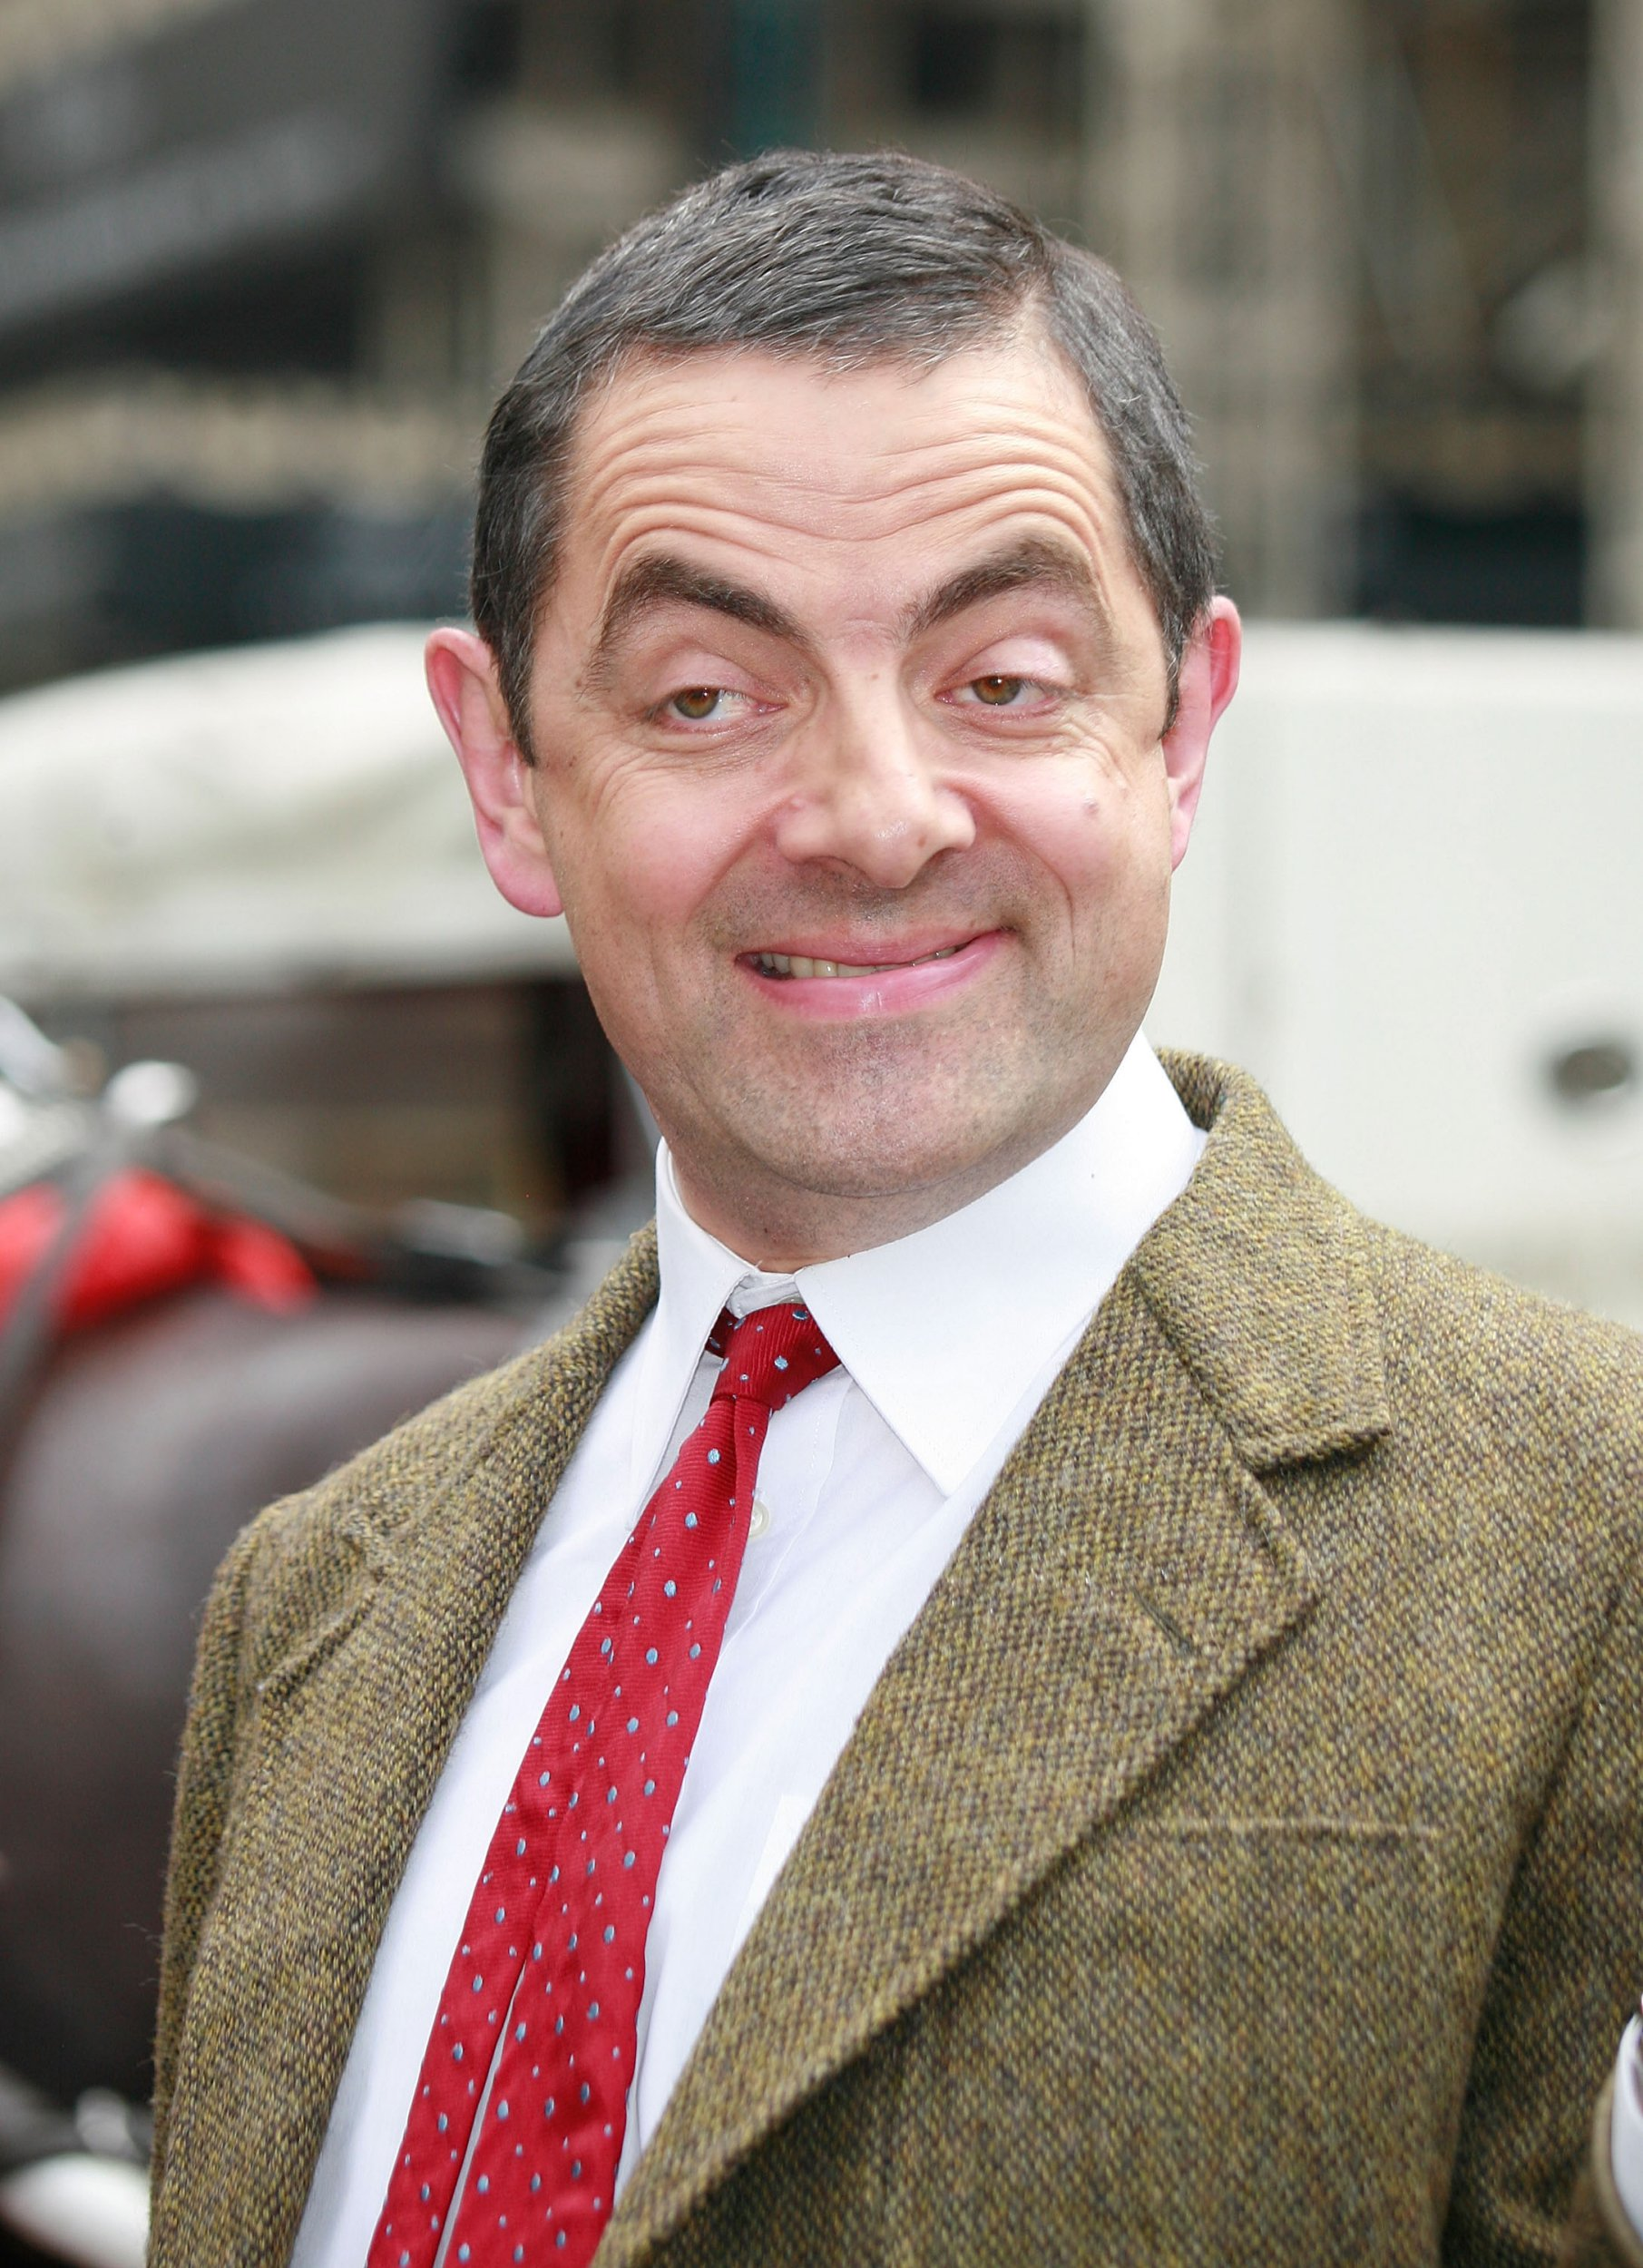 NEW YORK - JULY 19: Actor Rowan Atkinson AKA Mr. Bean sighting, posing in character for photographers on July 19, 2007 in 5th Avenue, New York. (Photo by Marcel Thomas/FilmMagic)